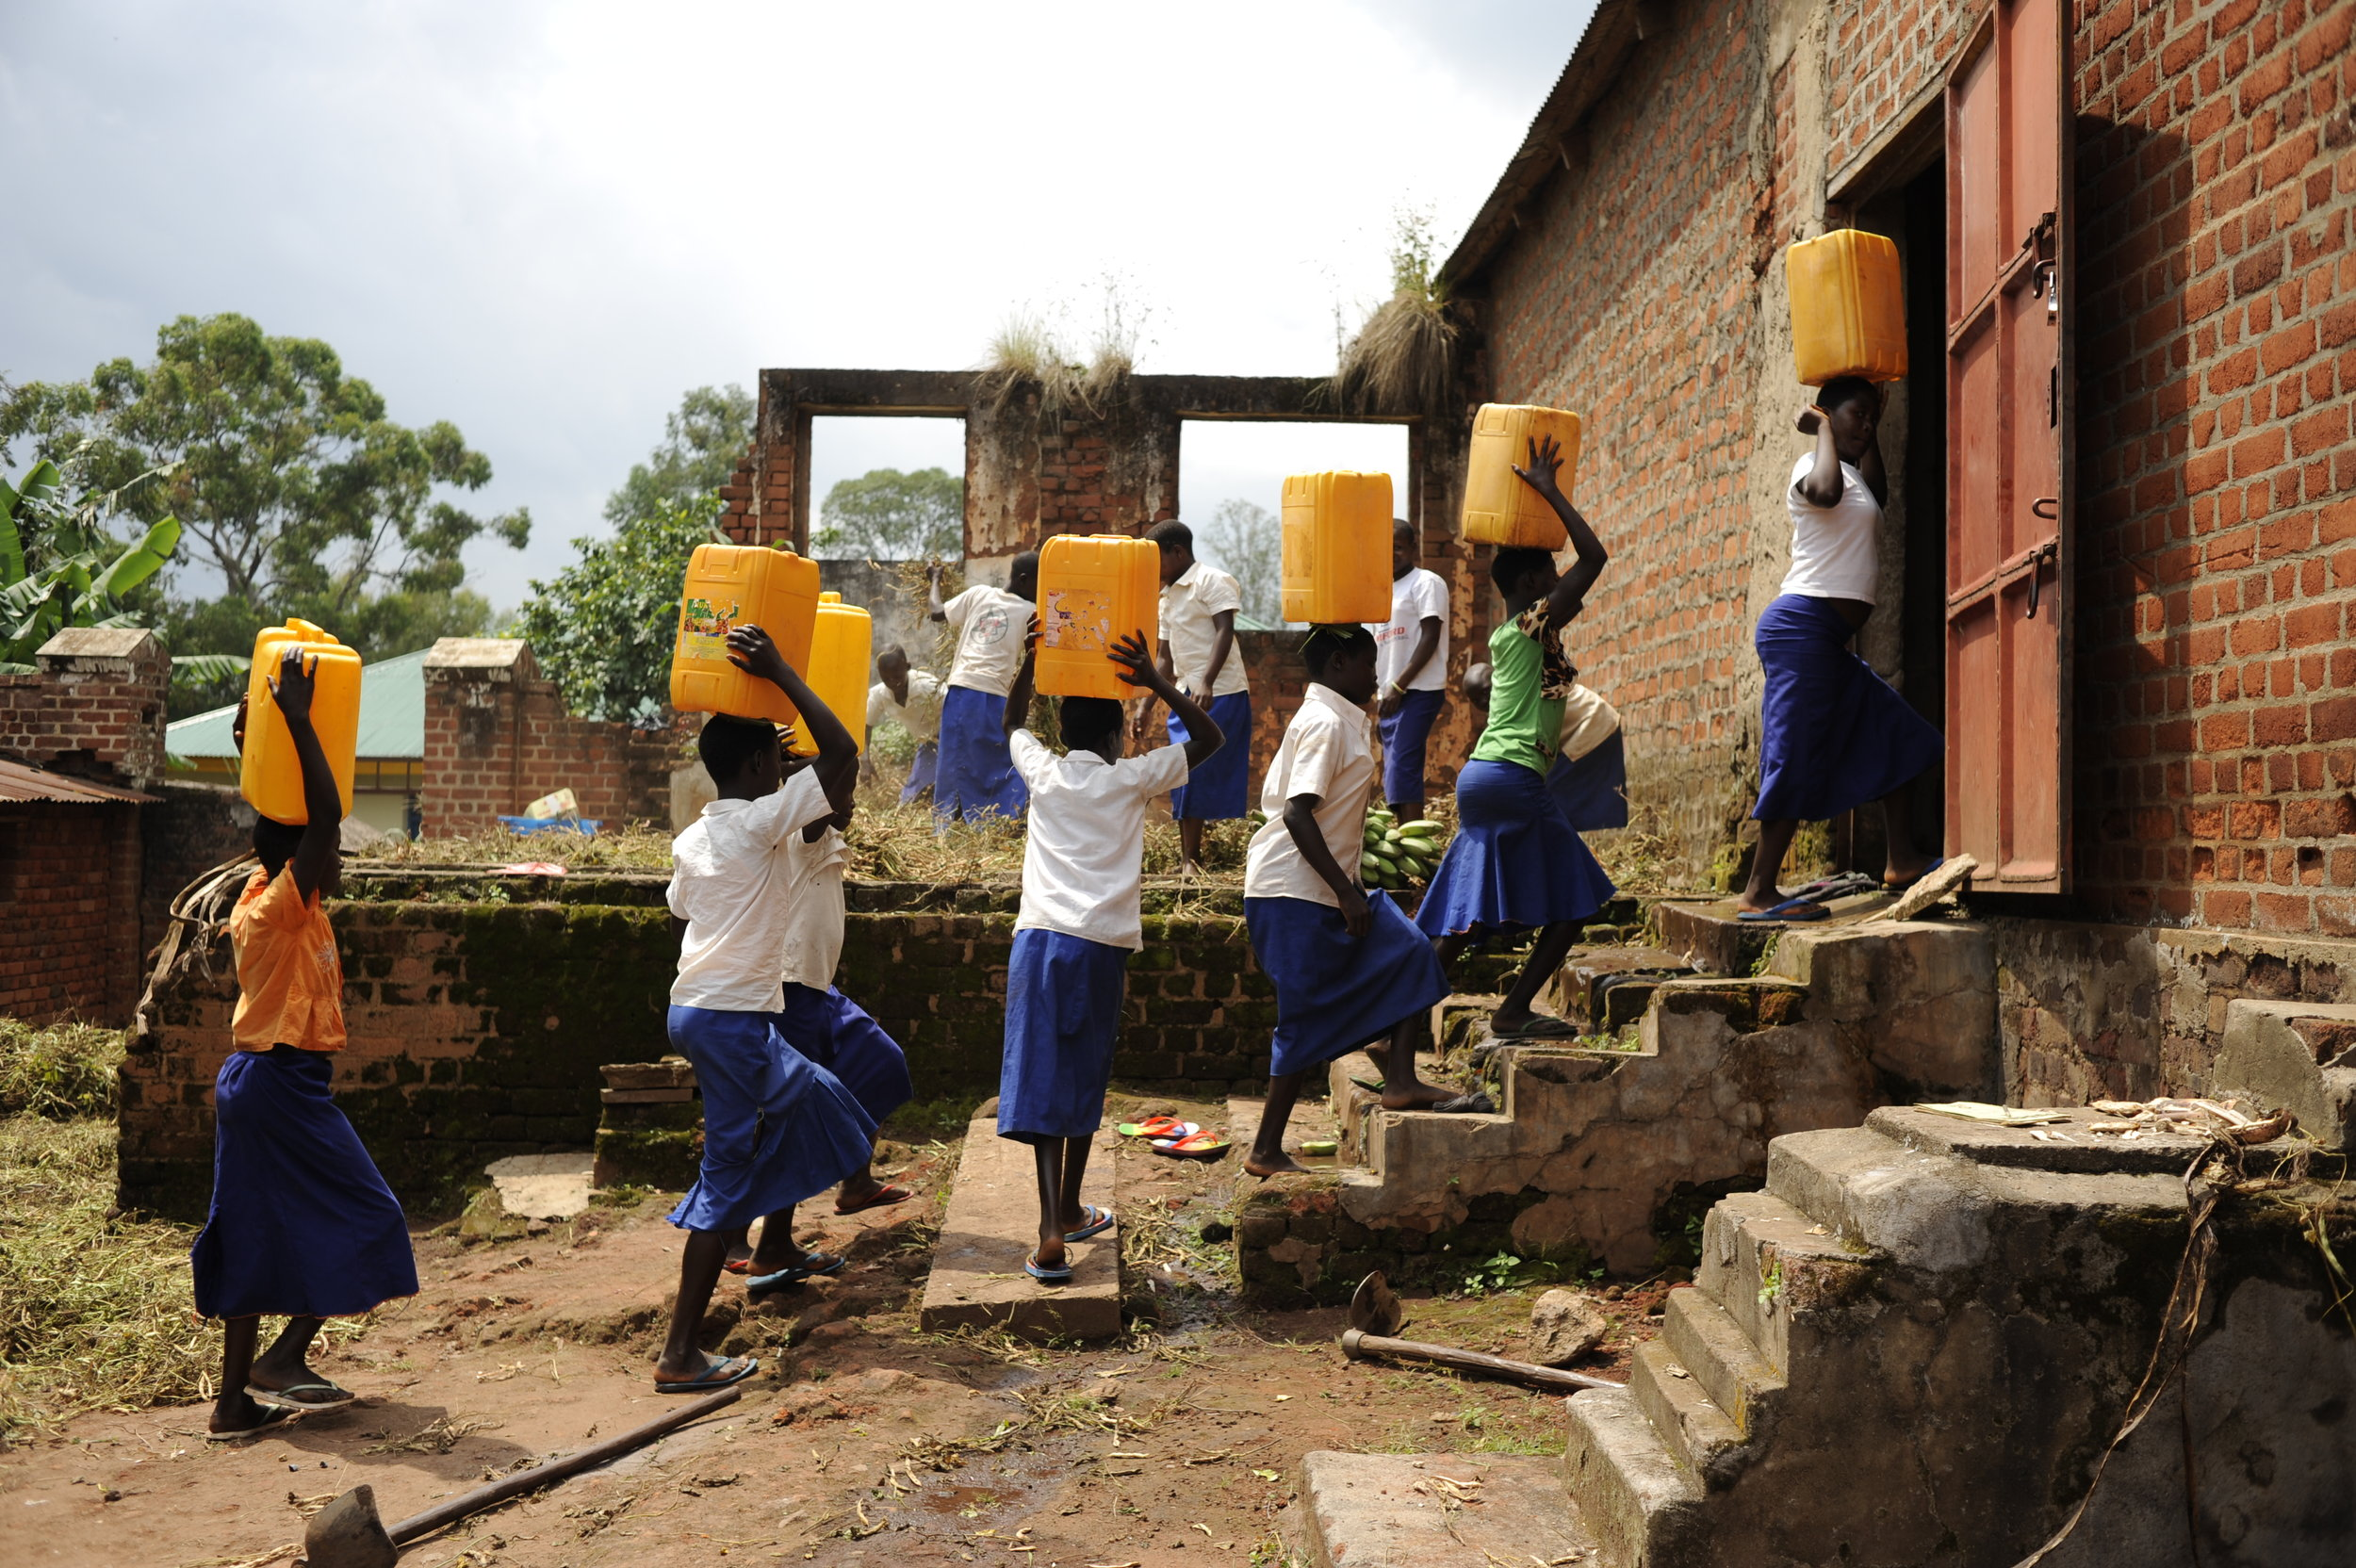 Students fetching water from the river prior to the rain tanks being installed.